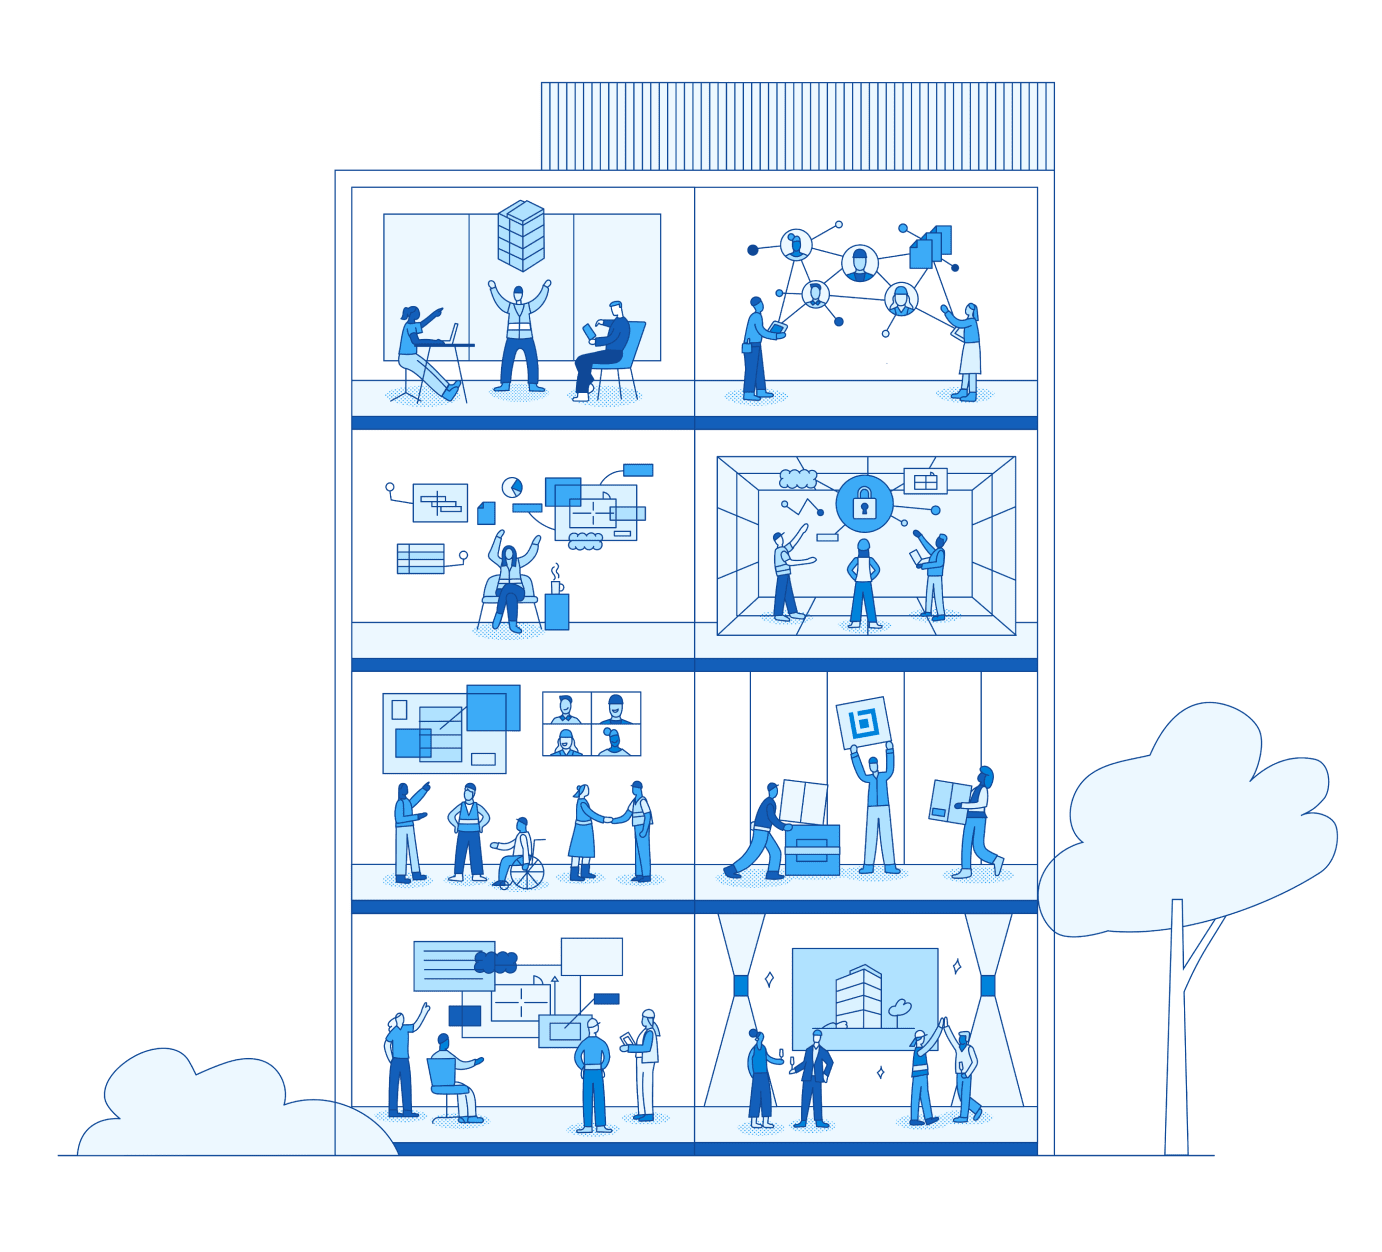 Bluebeam® digital construction solutions make it easy to onboard teams, securely collaborate in the cloud, and leverage data to make better decisions from project start to finish.